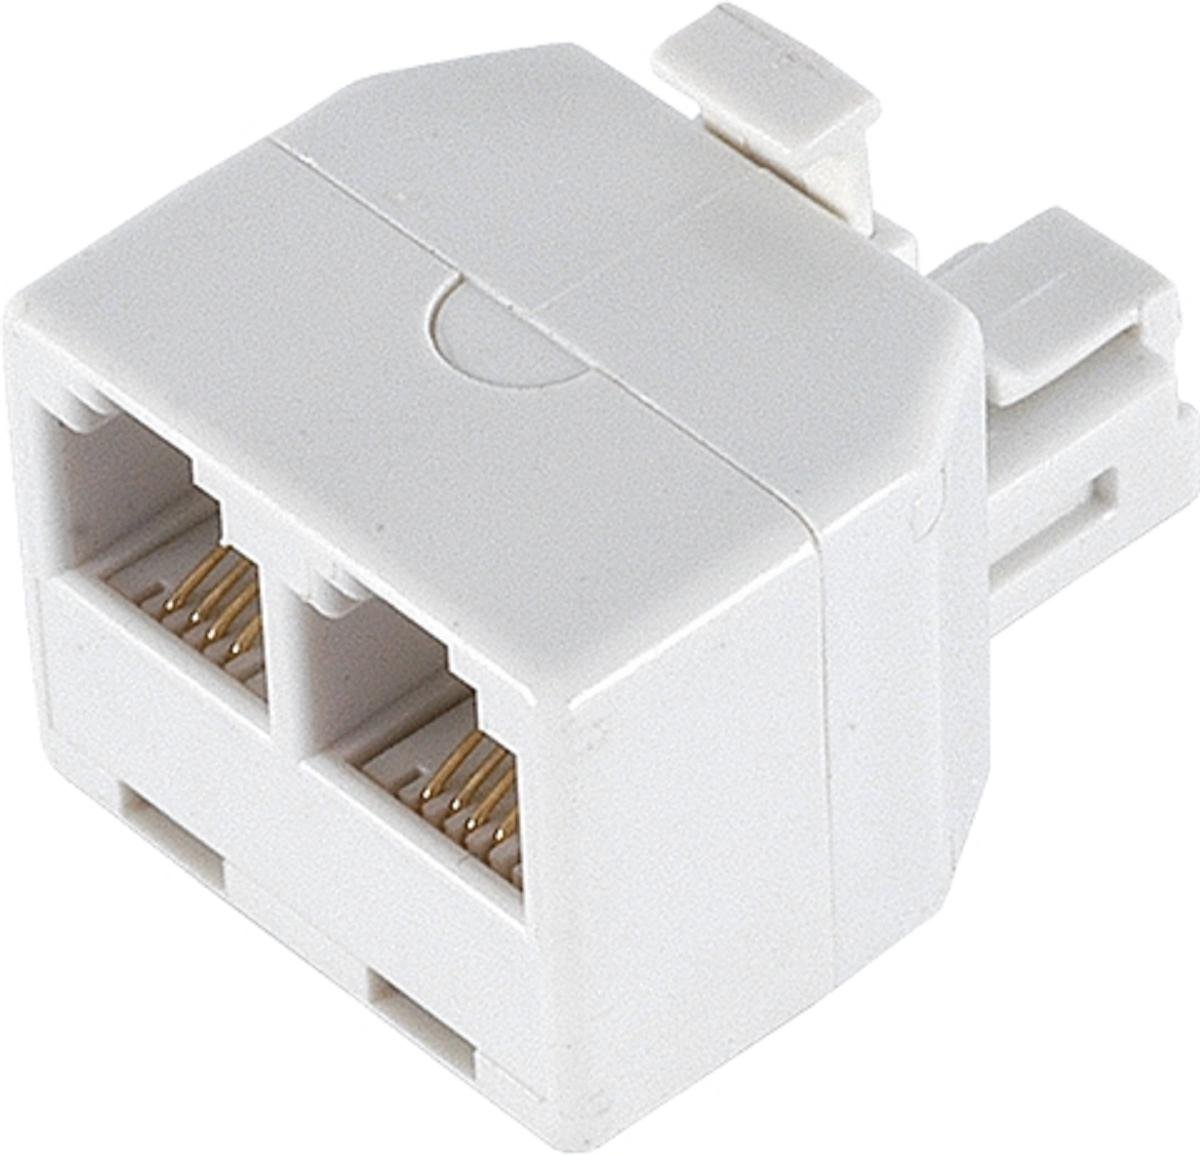 Ge 26191 Duplex Wall Jack Adapter White 4 Conductor